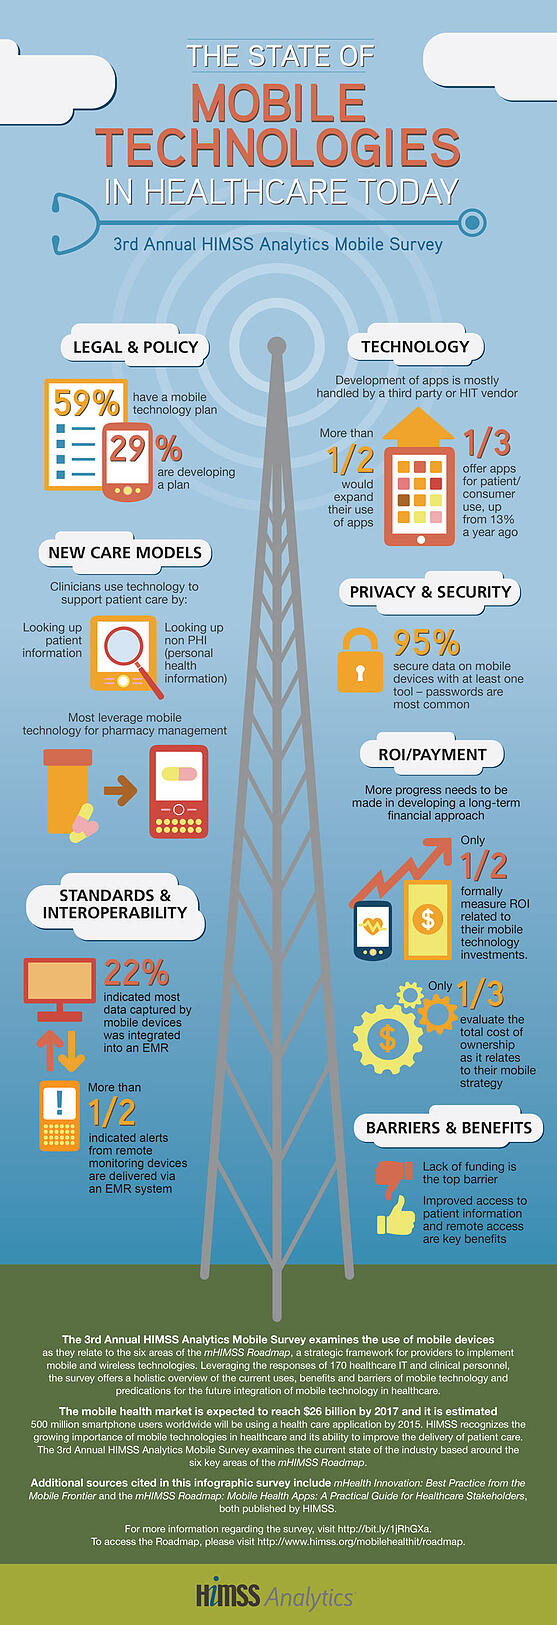 mobile technology in healthcare, hospital wireless networks